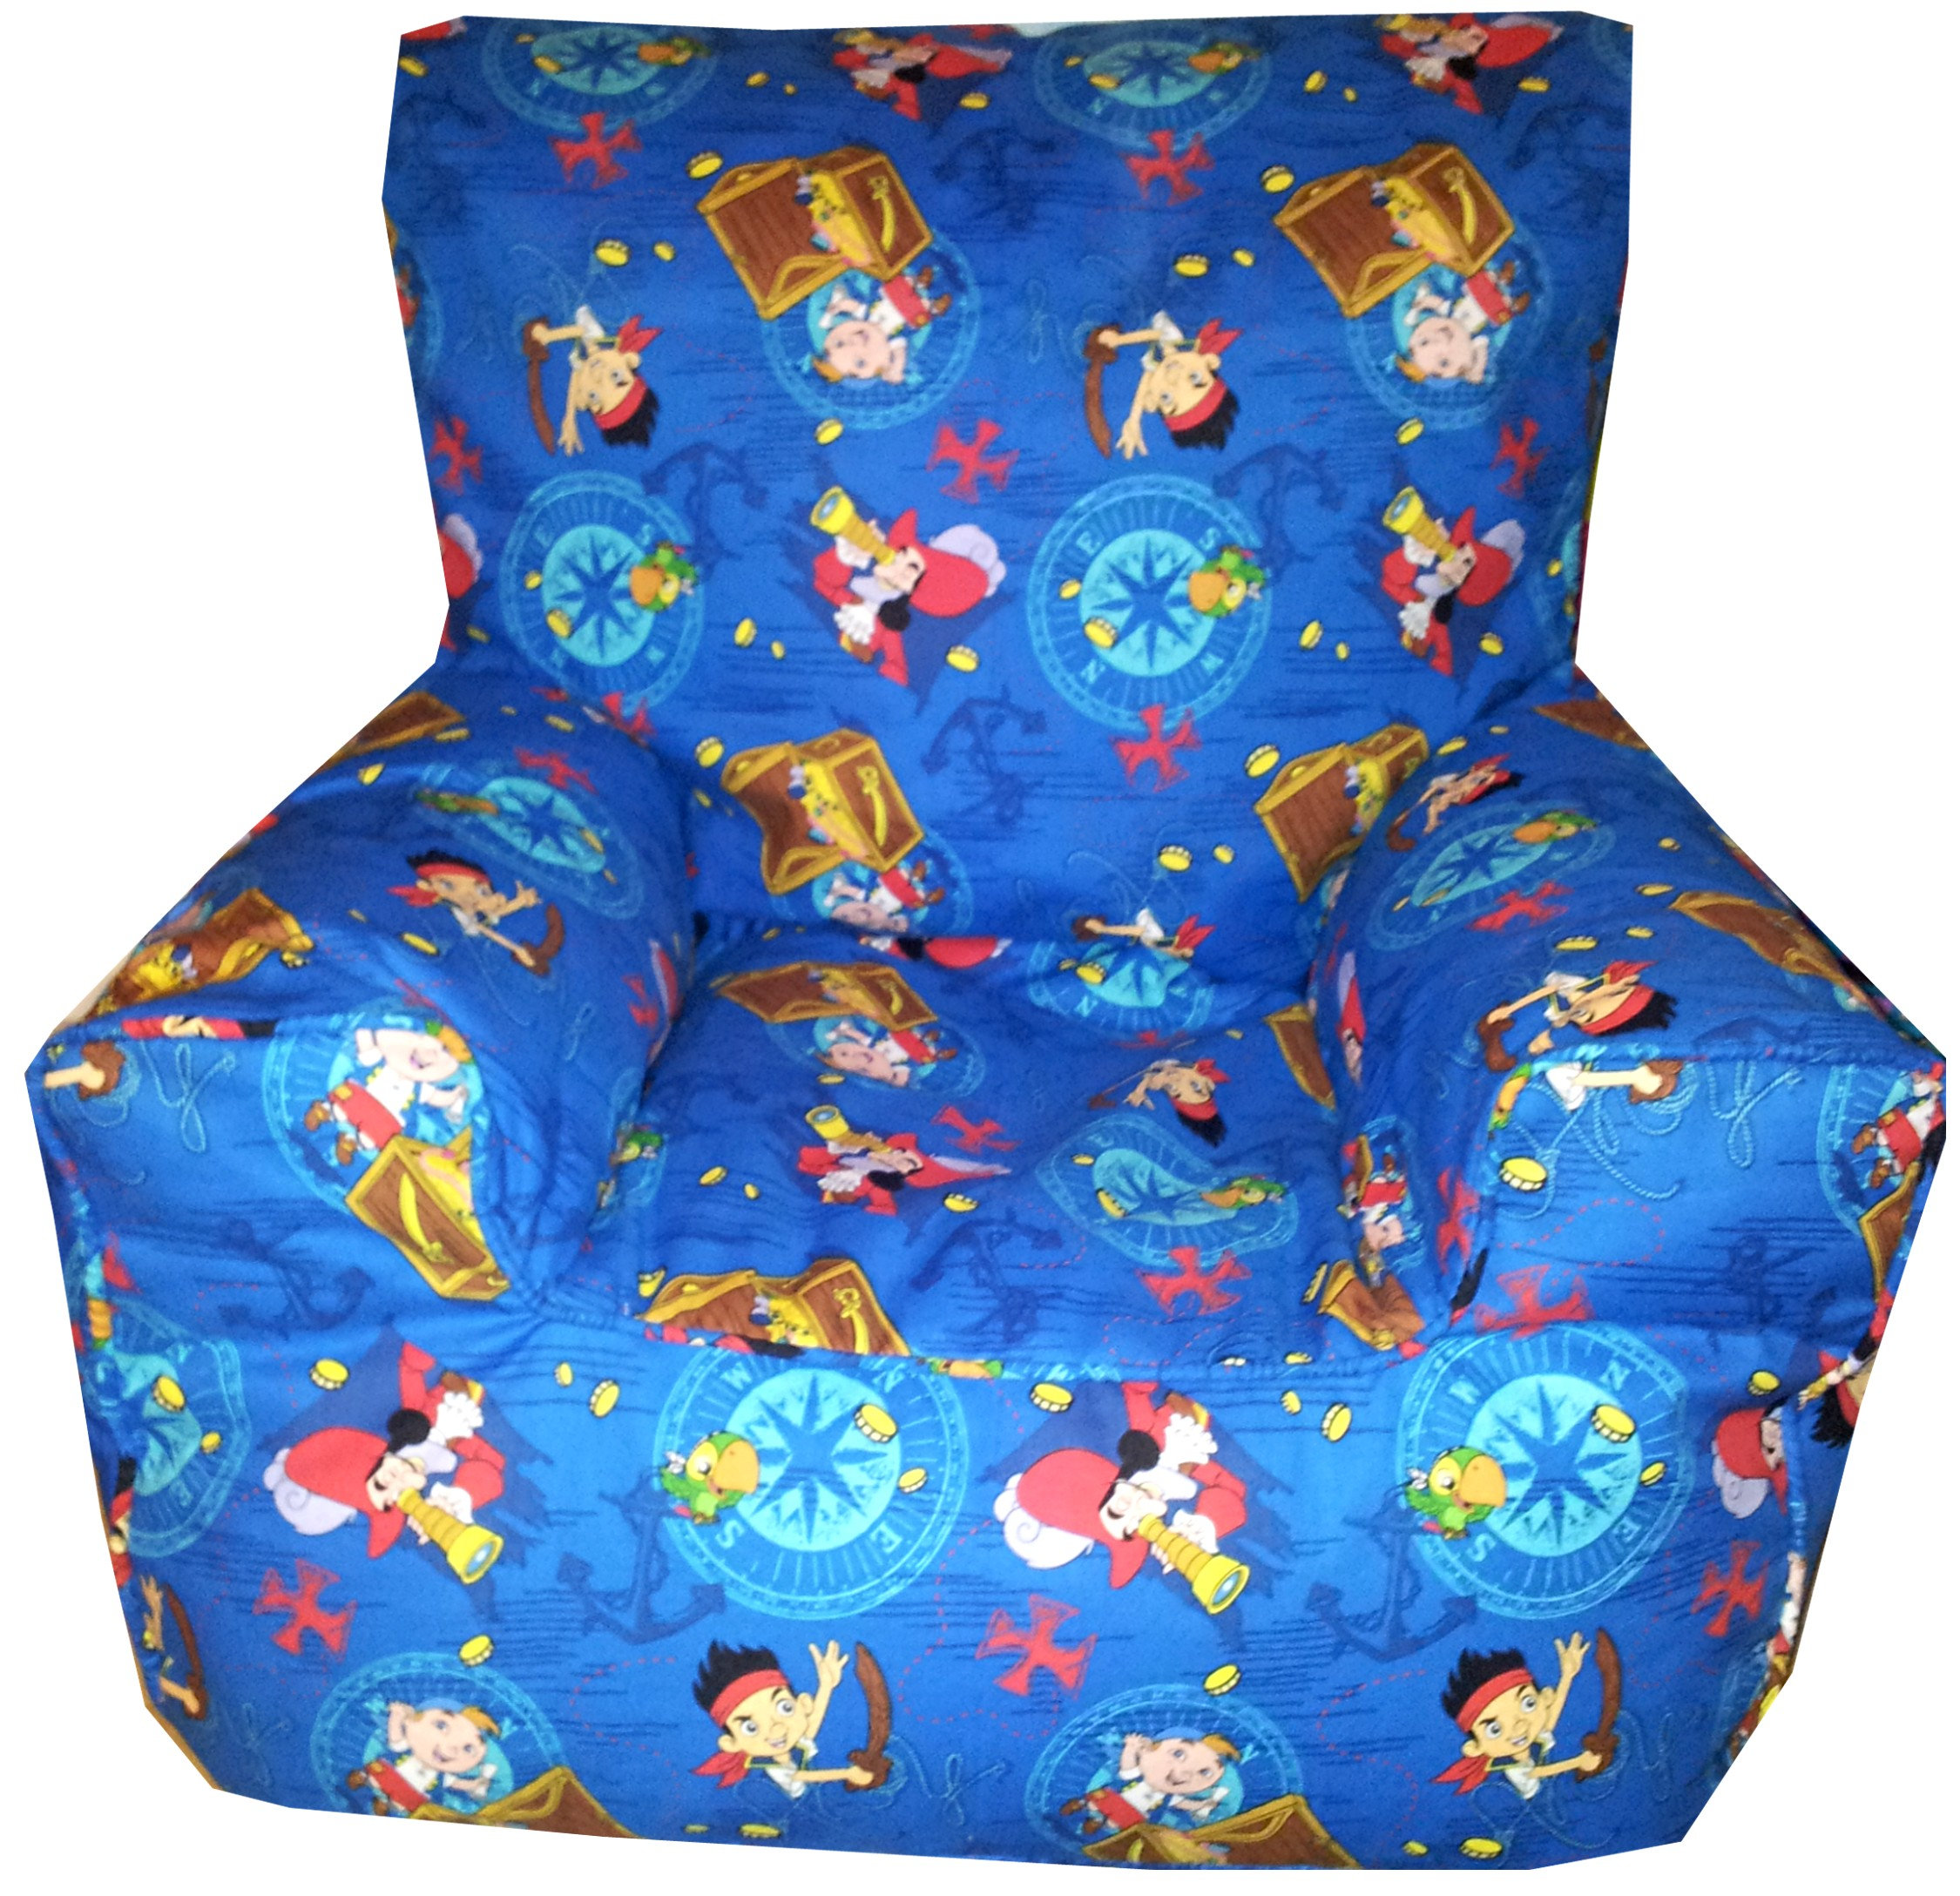 Excellent Jake And The Neverland Pirates Bean Bag Chair Download Free Architecture Designs Scobabritishbridgeorg